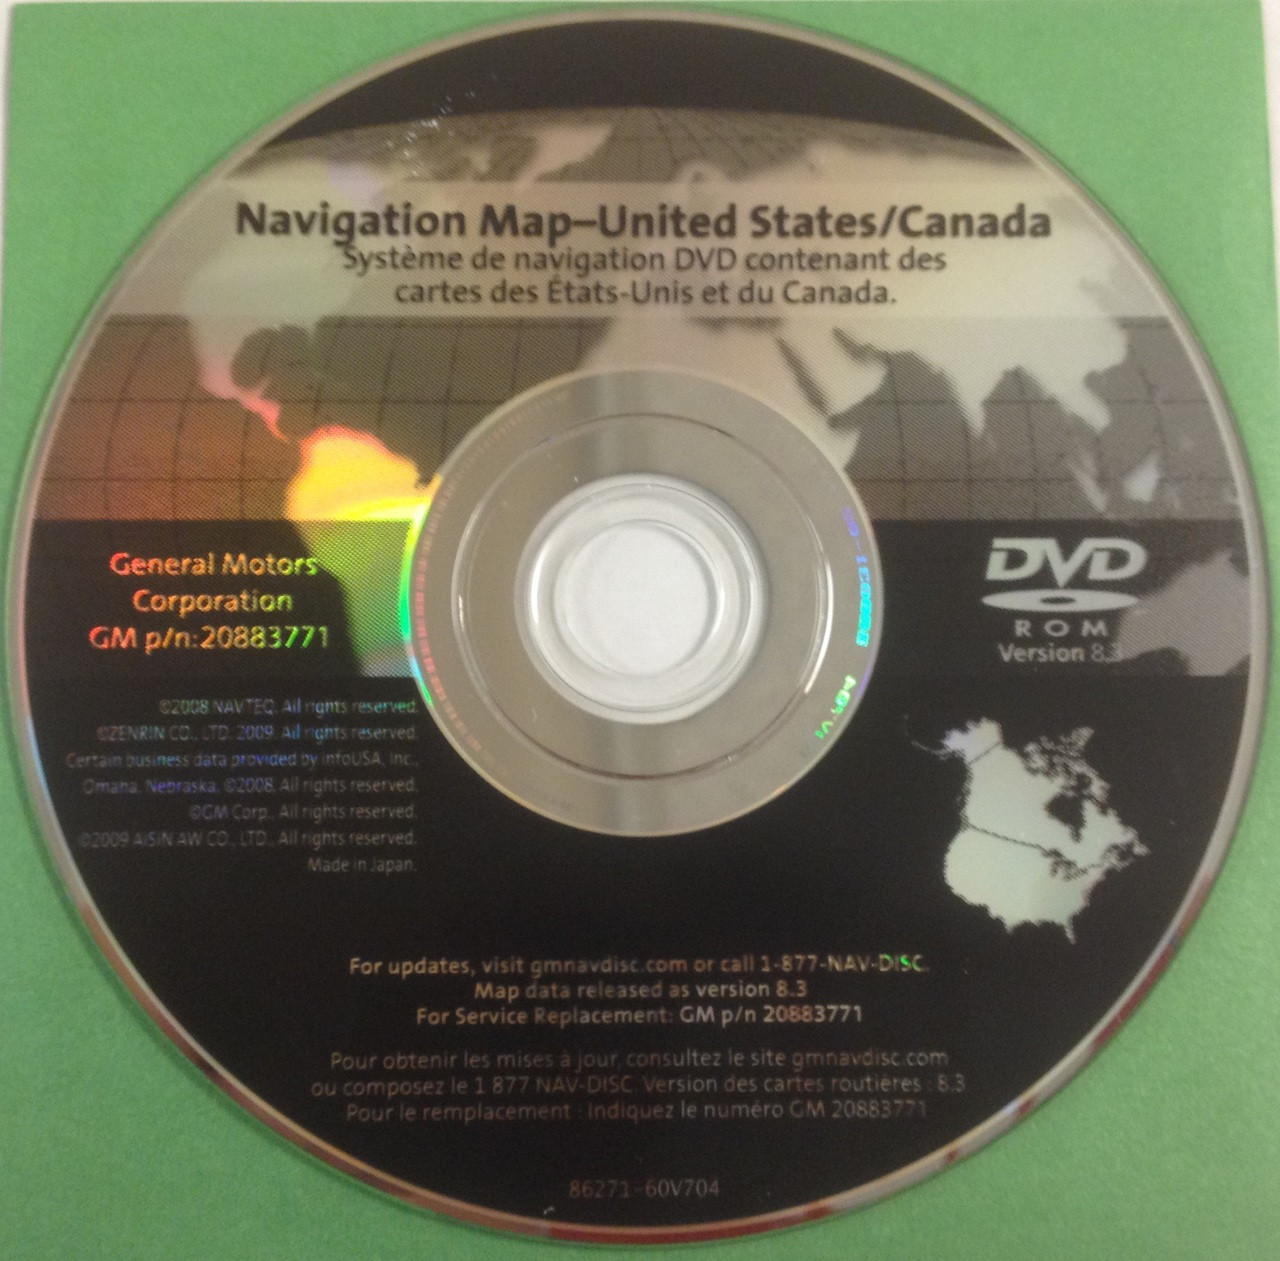 GM Satellite Navigation System CD 20883771 Version 8.3 - CD4Car